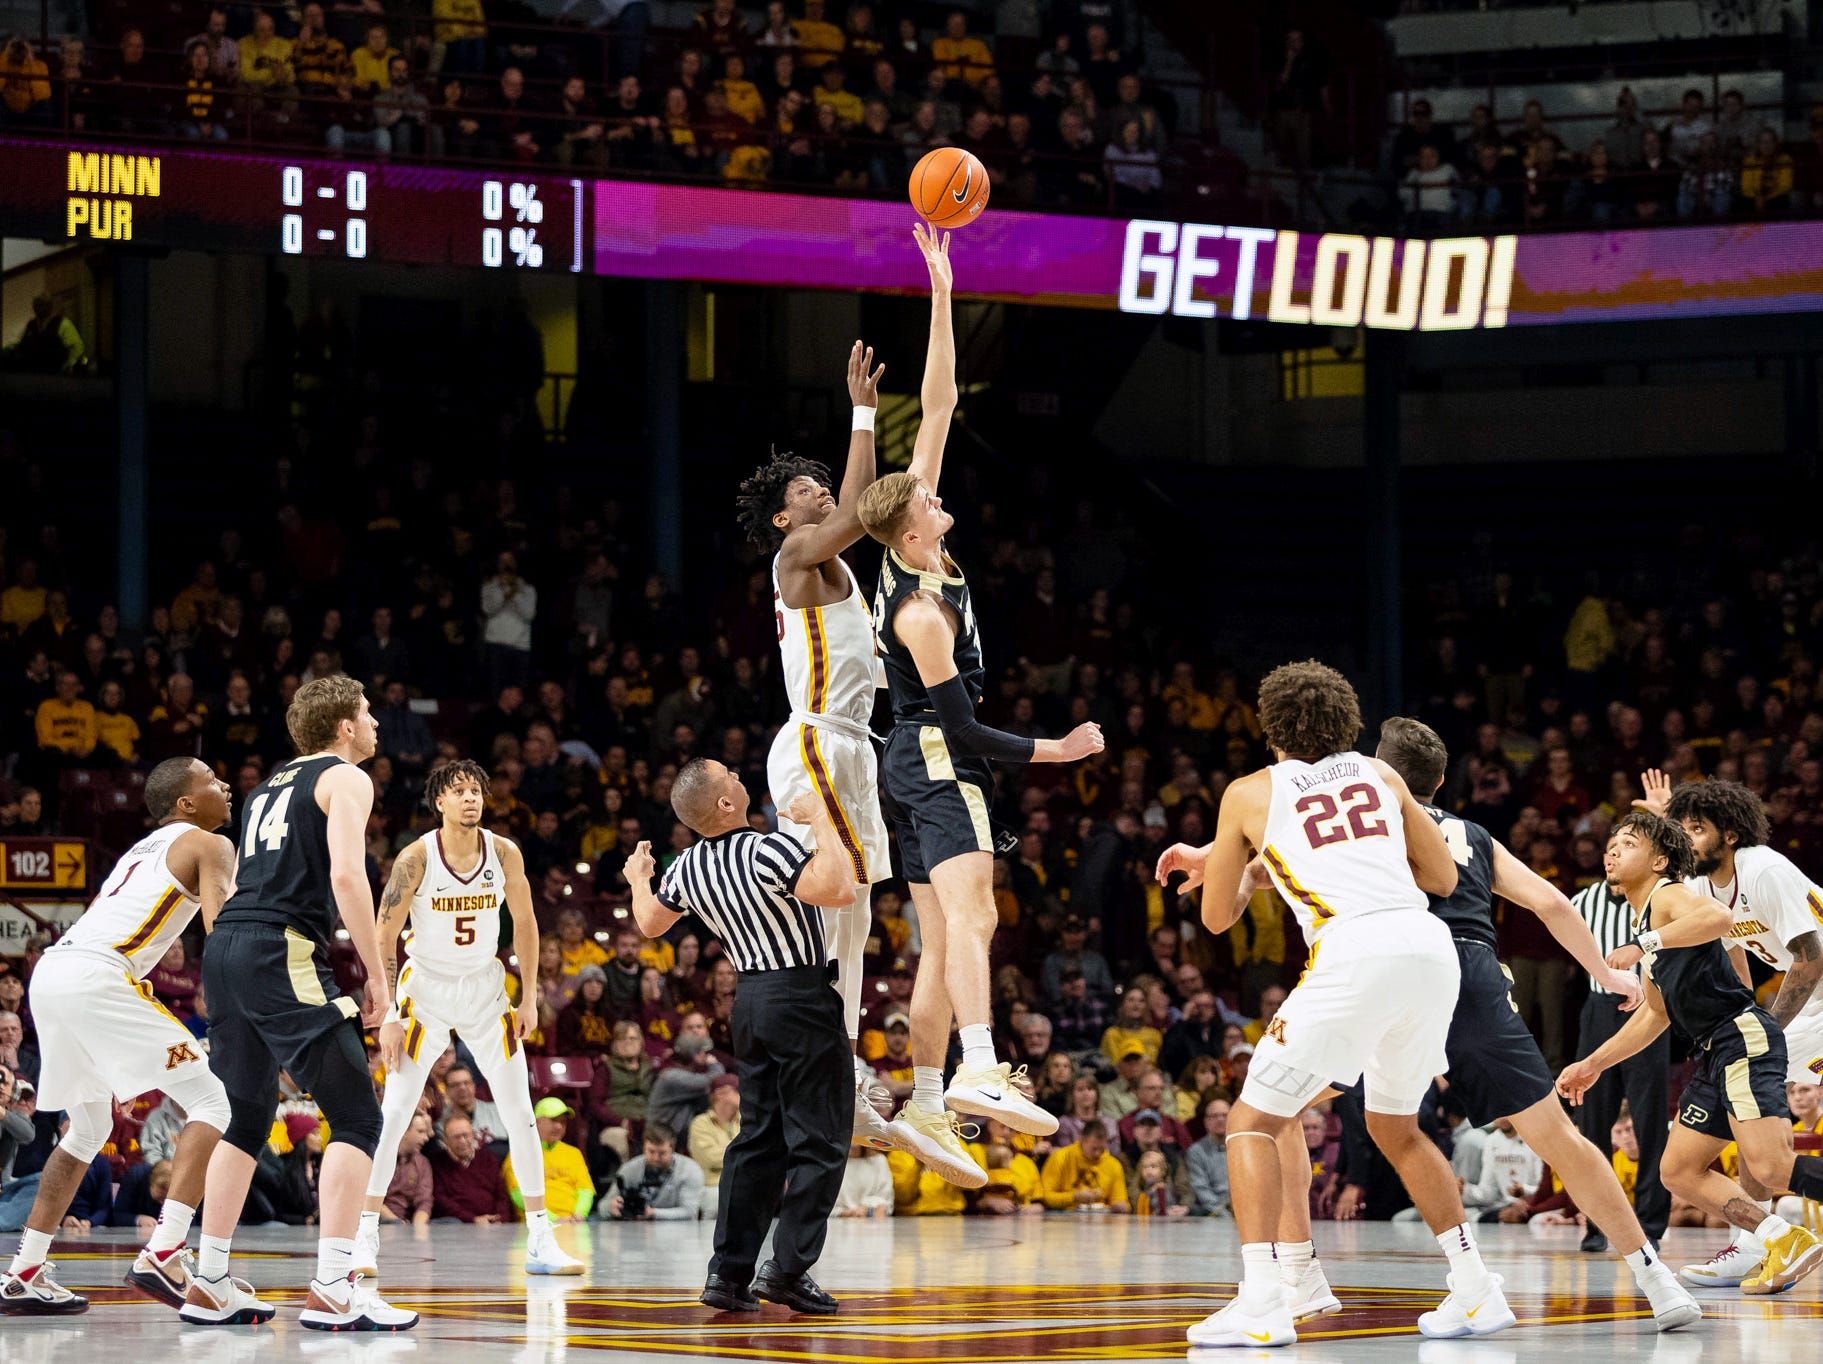 Mar 5, 2019; Minneapolis, MN, USA; Minnesota Gophers center Daniel Oturu (25) and Purdue Boilermakers center Matt Haarms (32) jump for the ball during the first half at Williams Arena. Mandatory Credit: Harrison Barden-USA TODAY Sports